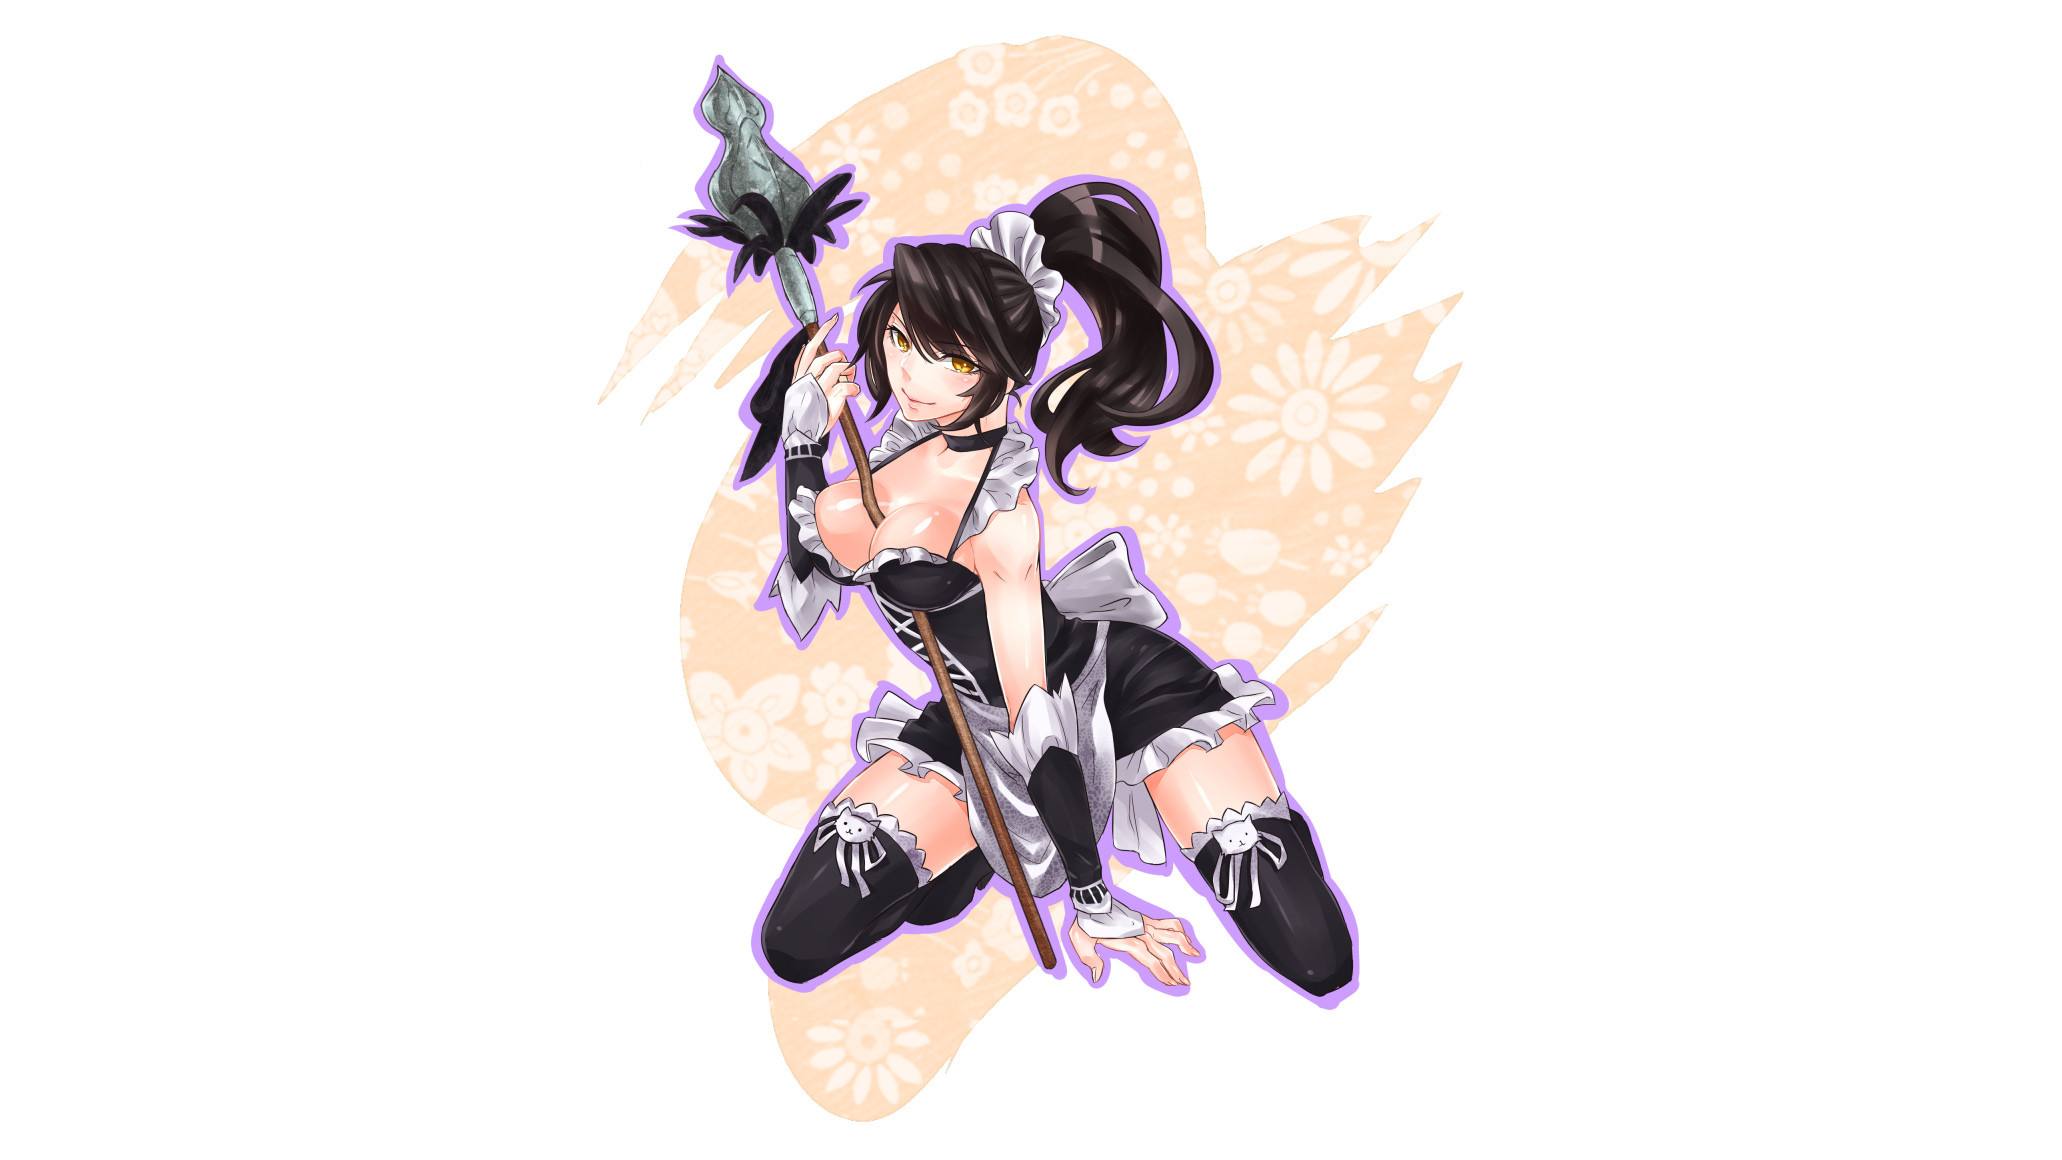 2062x1160 French Maid Nidalee by ㄒㄒ☆シシィ HD Wallpaper Fan Artwork League of Legends lol